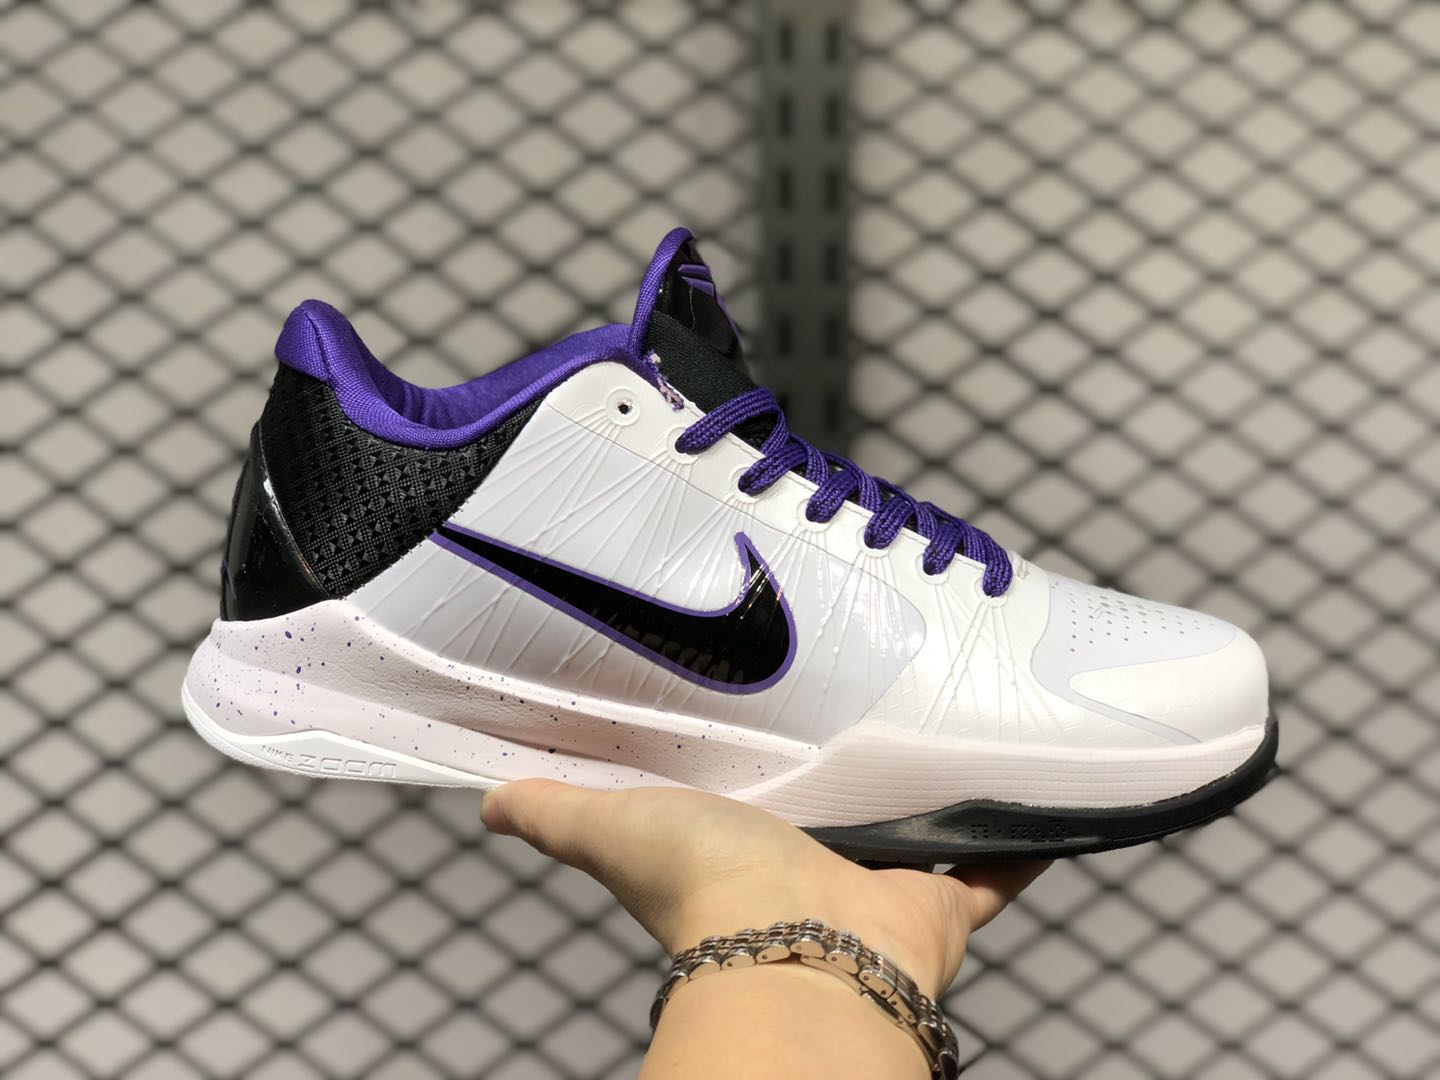 Nike Zoom Kobe 5 White/Black/Varsity Purple Basketball Shoes 386429-101